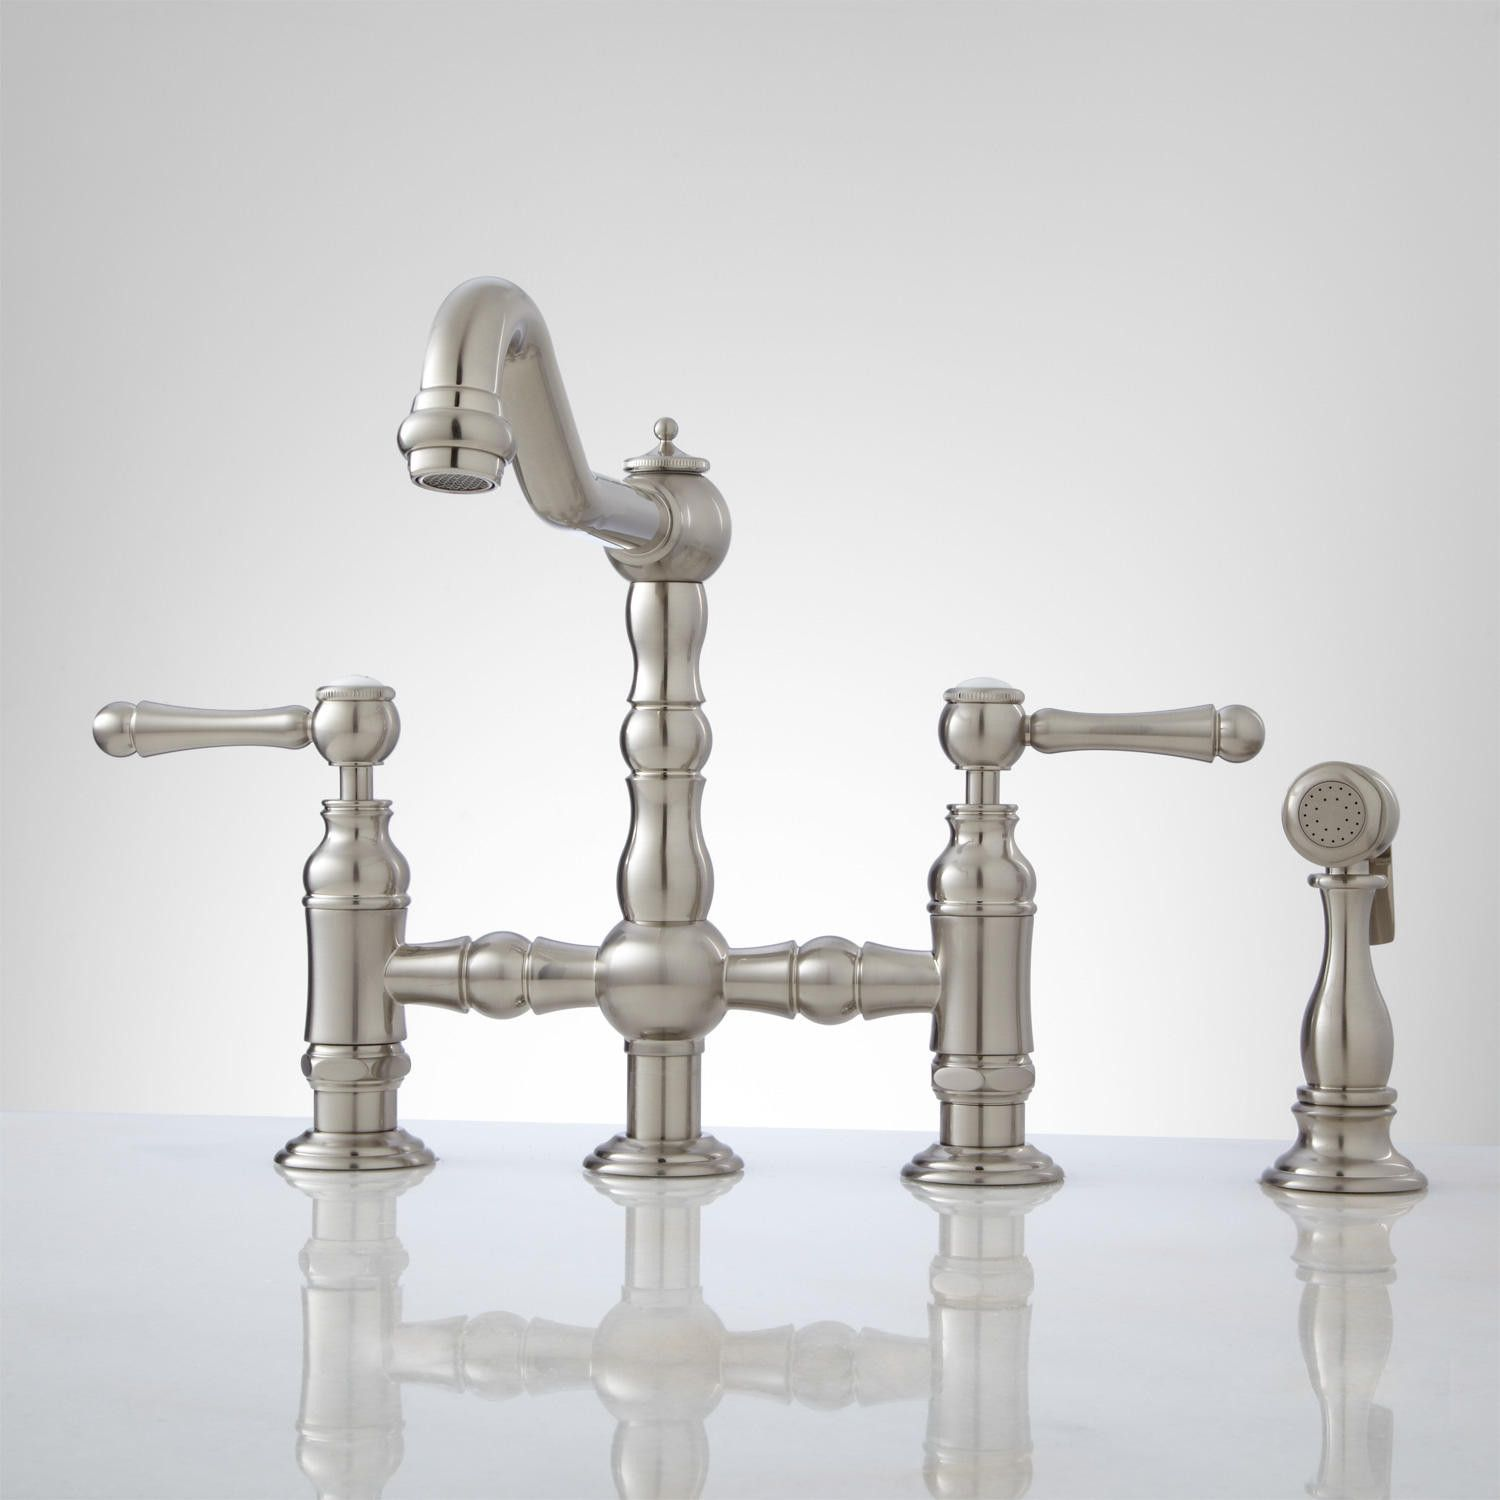 bridge faucets for kitchen country table sets delilah deck-mount faucet with side spray - lever ...